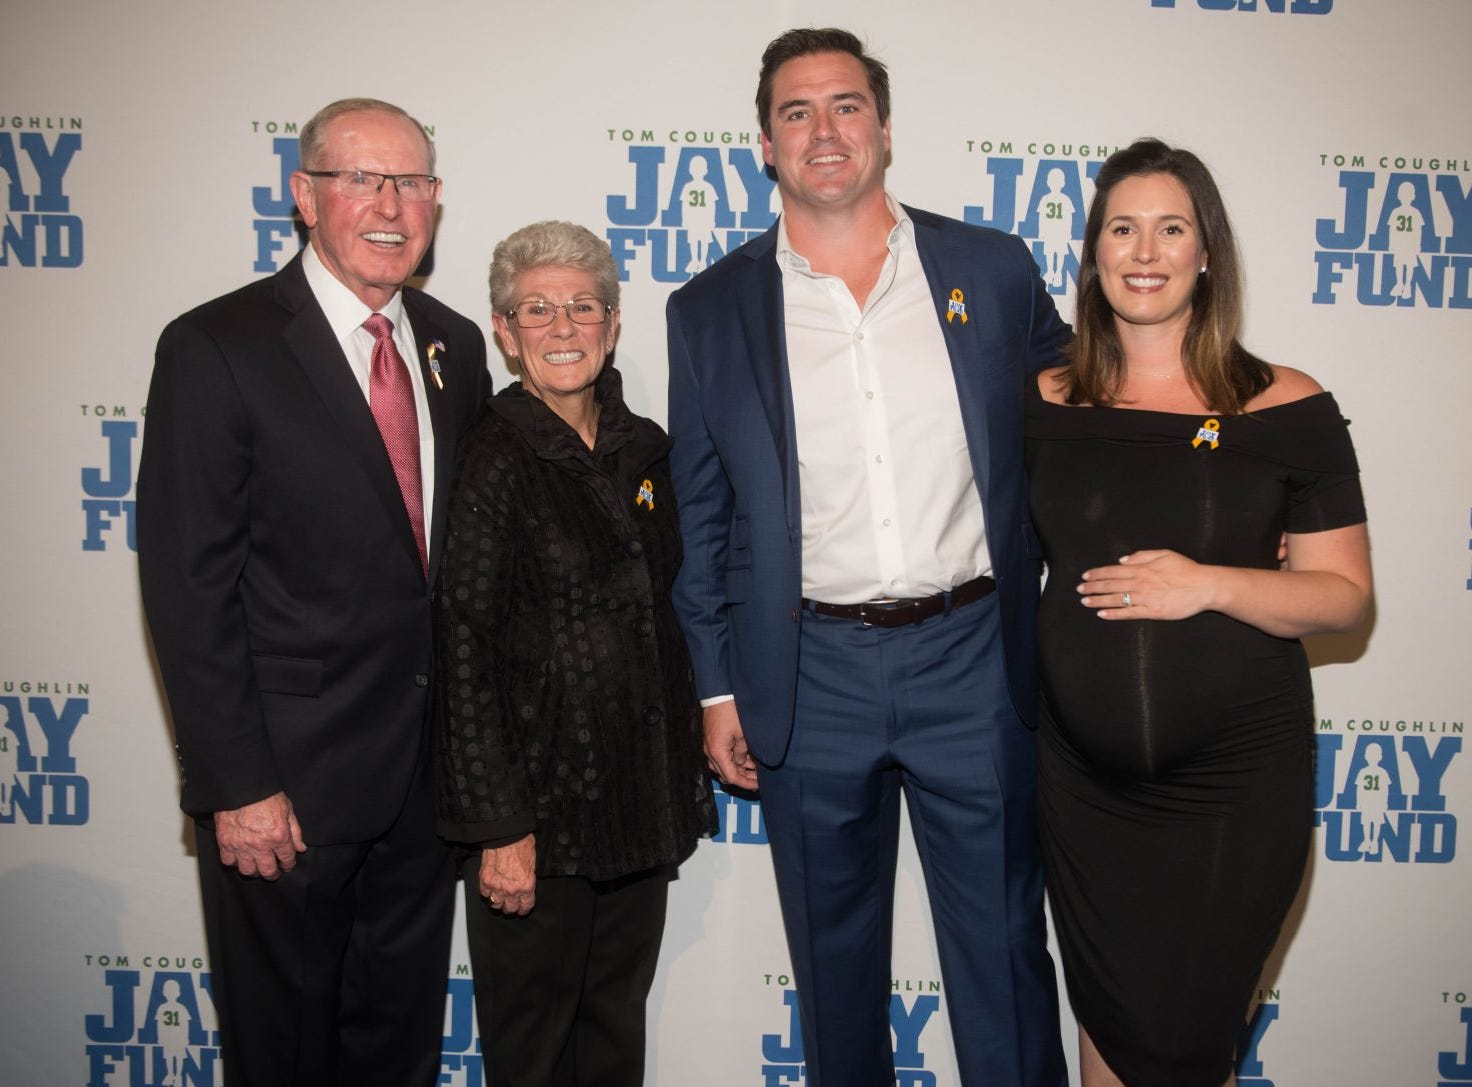 Tom Coughlin, Judy Coughlin, Tim Bulman and Carrie Bulman. The 14th annual Jay Fund Champions for Children Gala was held at Cipriani 42nd Street. 09/21/2018